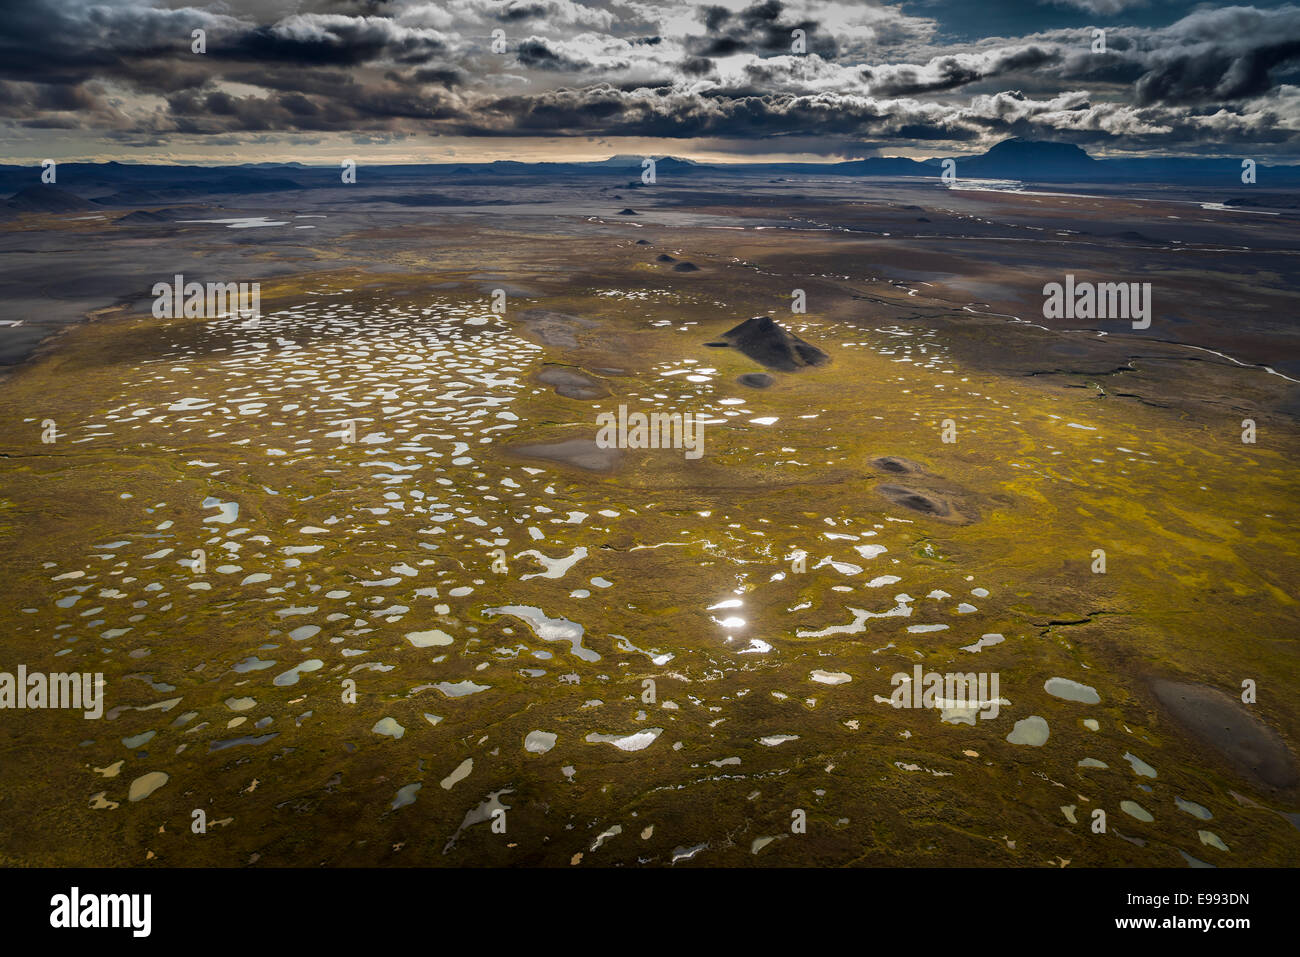 Lava and sands near Holuhraun Fissure Eruption by the Bardarbunga Volcano, Iceland. - Stock Image